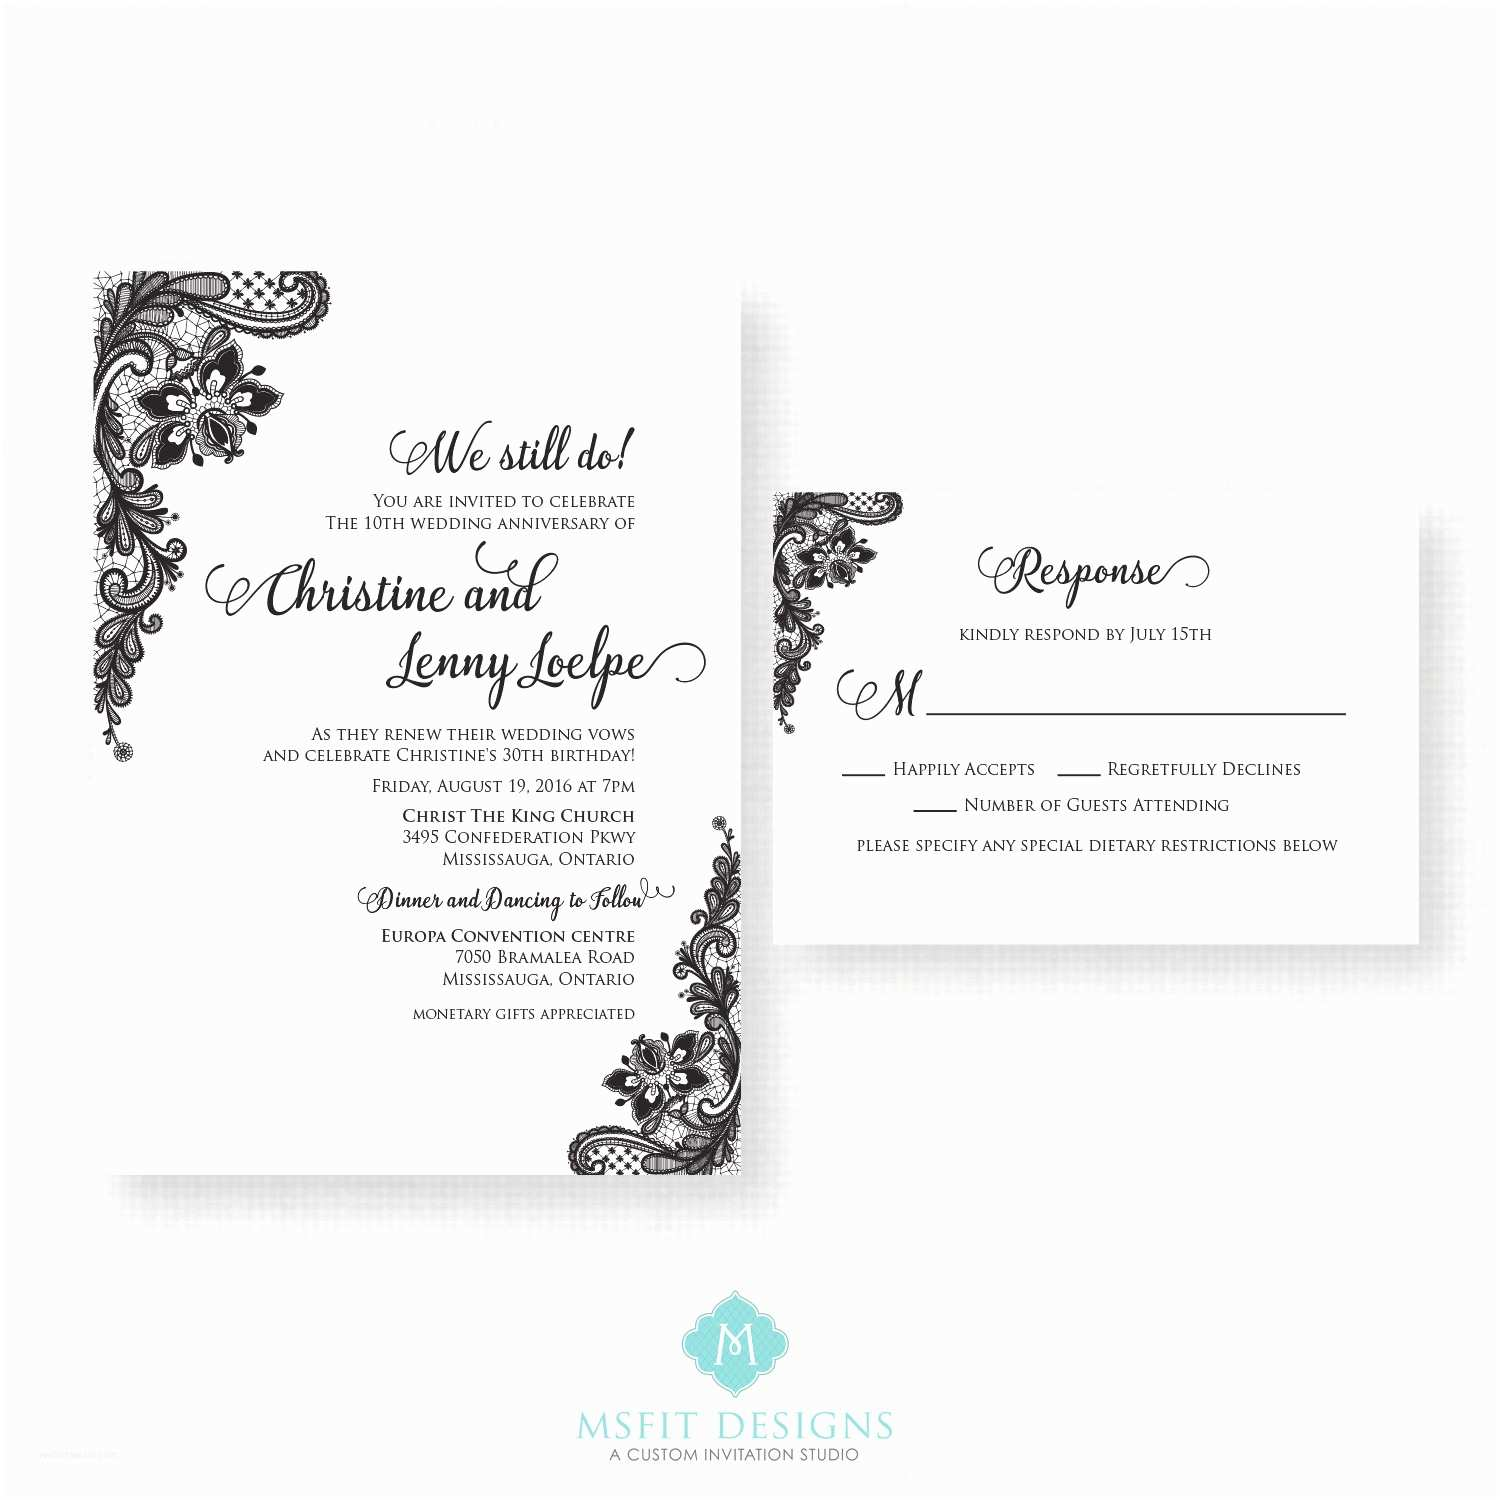 Wedding Invitations with Rsvp Cards Included 30 Fresh Rsvp Wedding Cards Wedding Idea